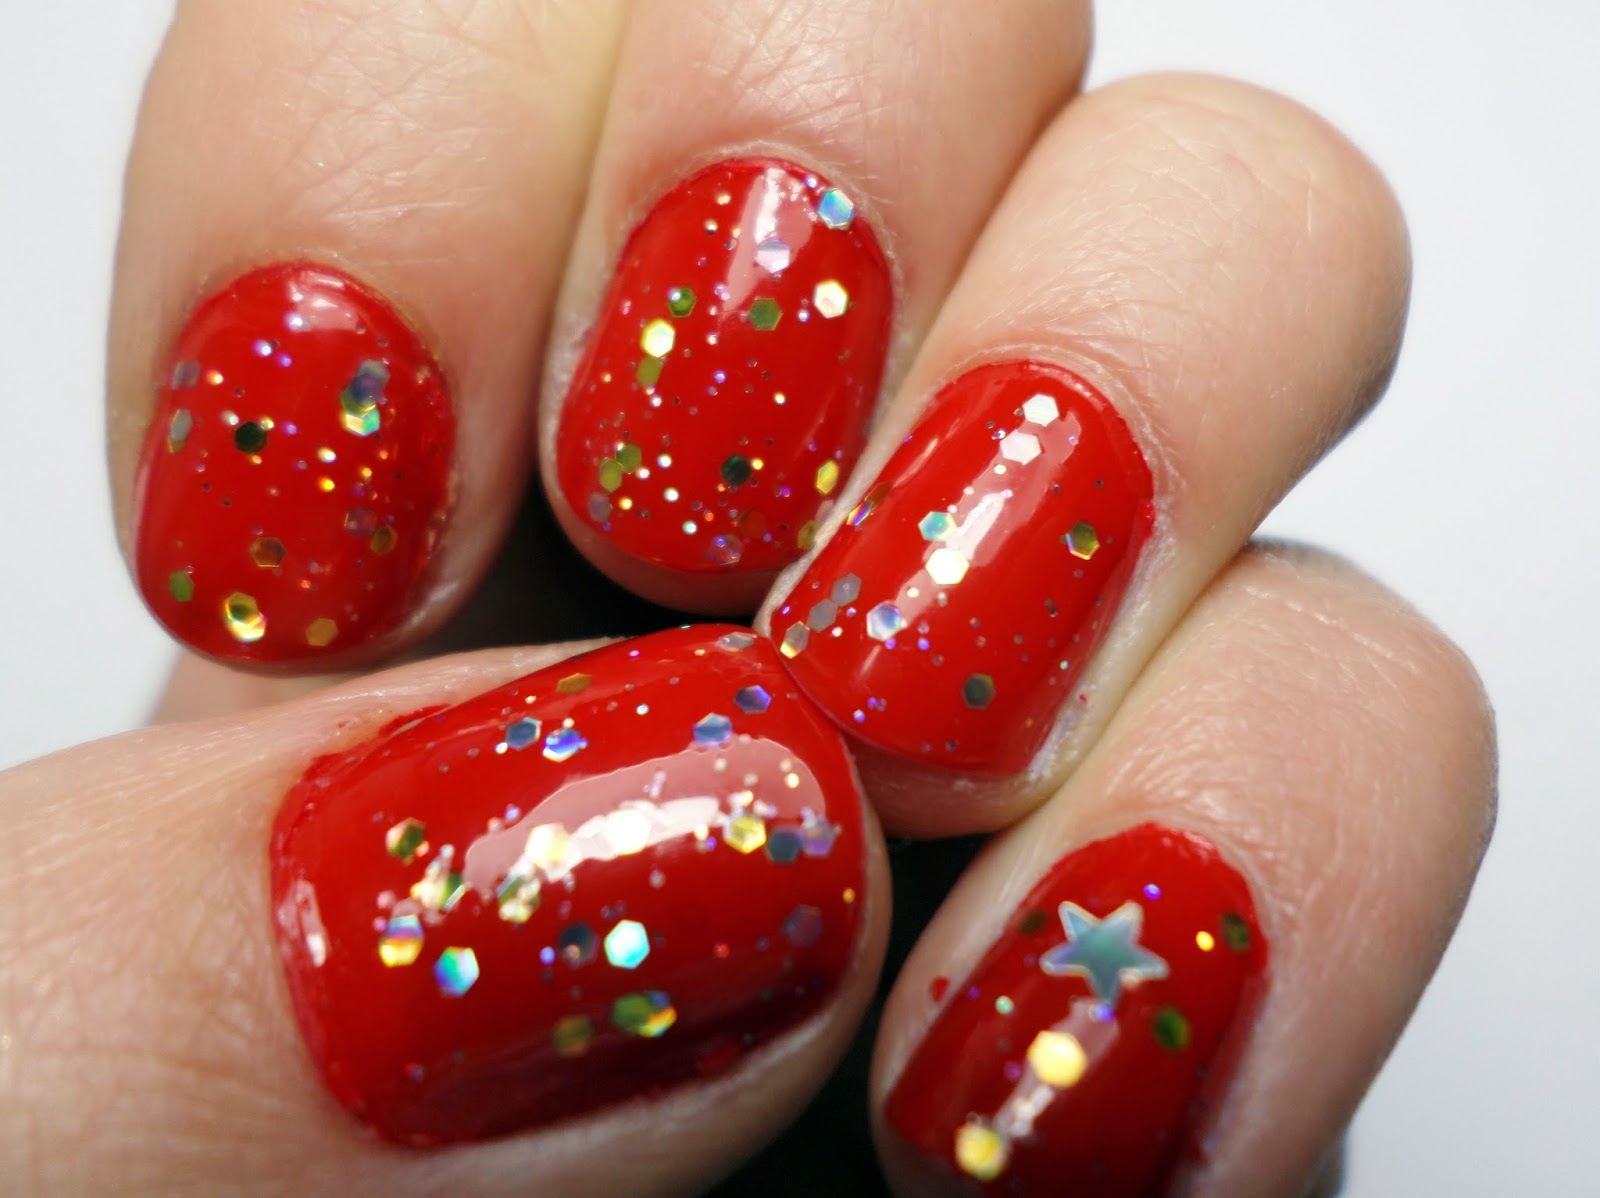 L'Oreal Color Riche 408 Exquisite Scarlet, Barry M Nail Paint in Starlight & Seche Vite Top Coat